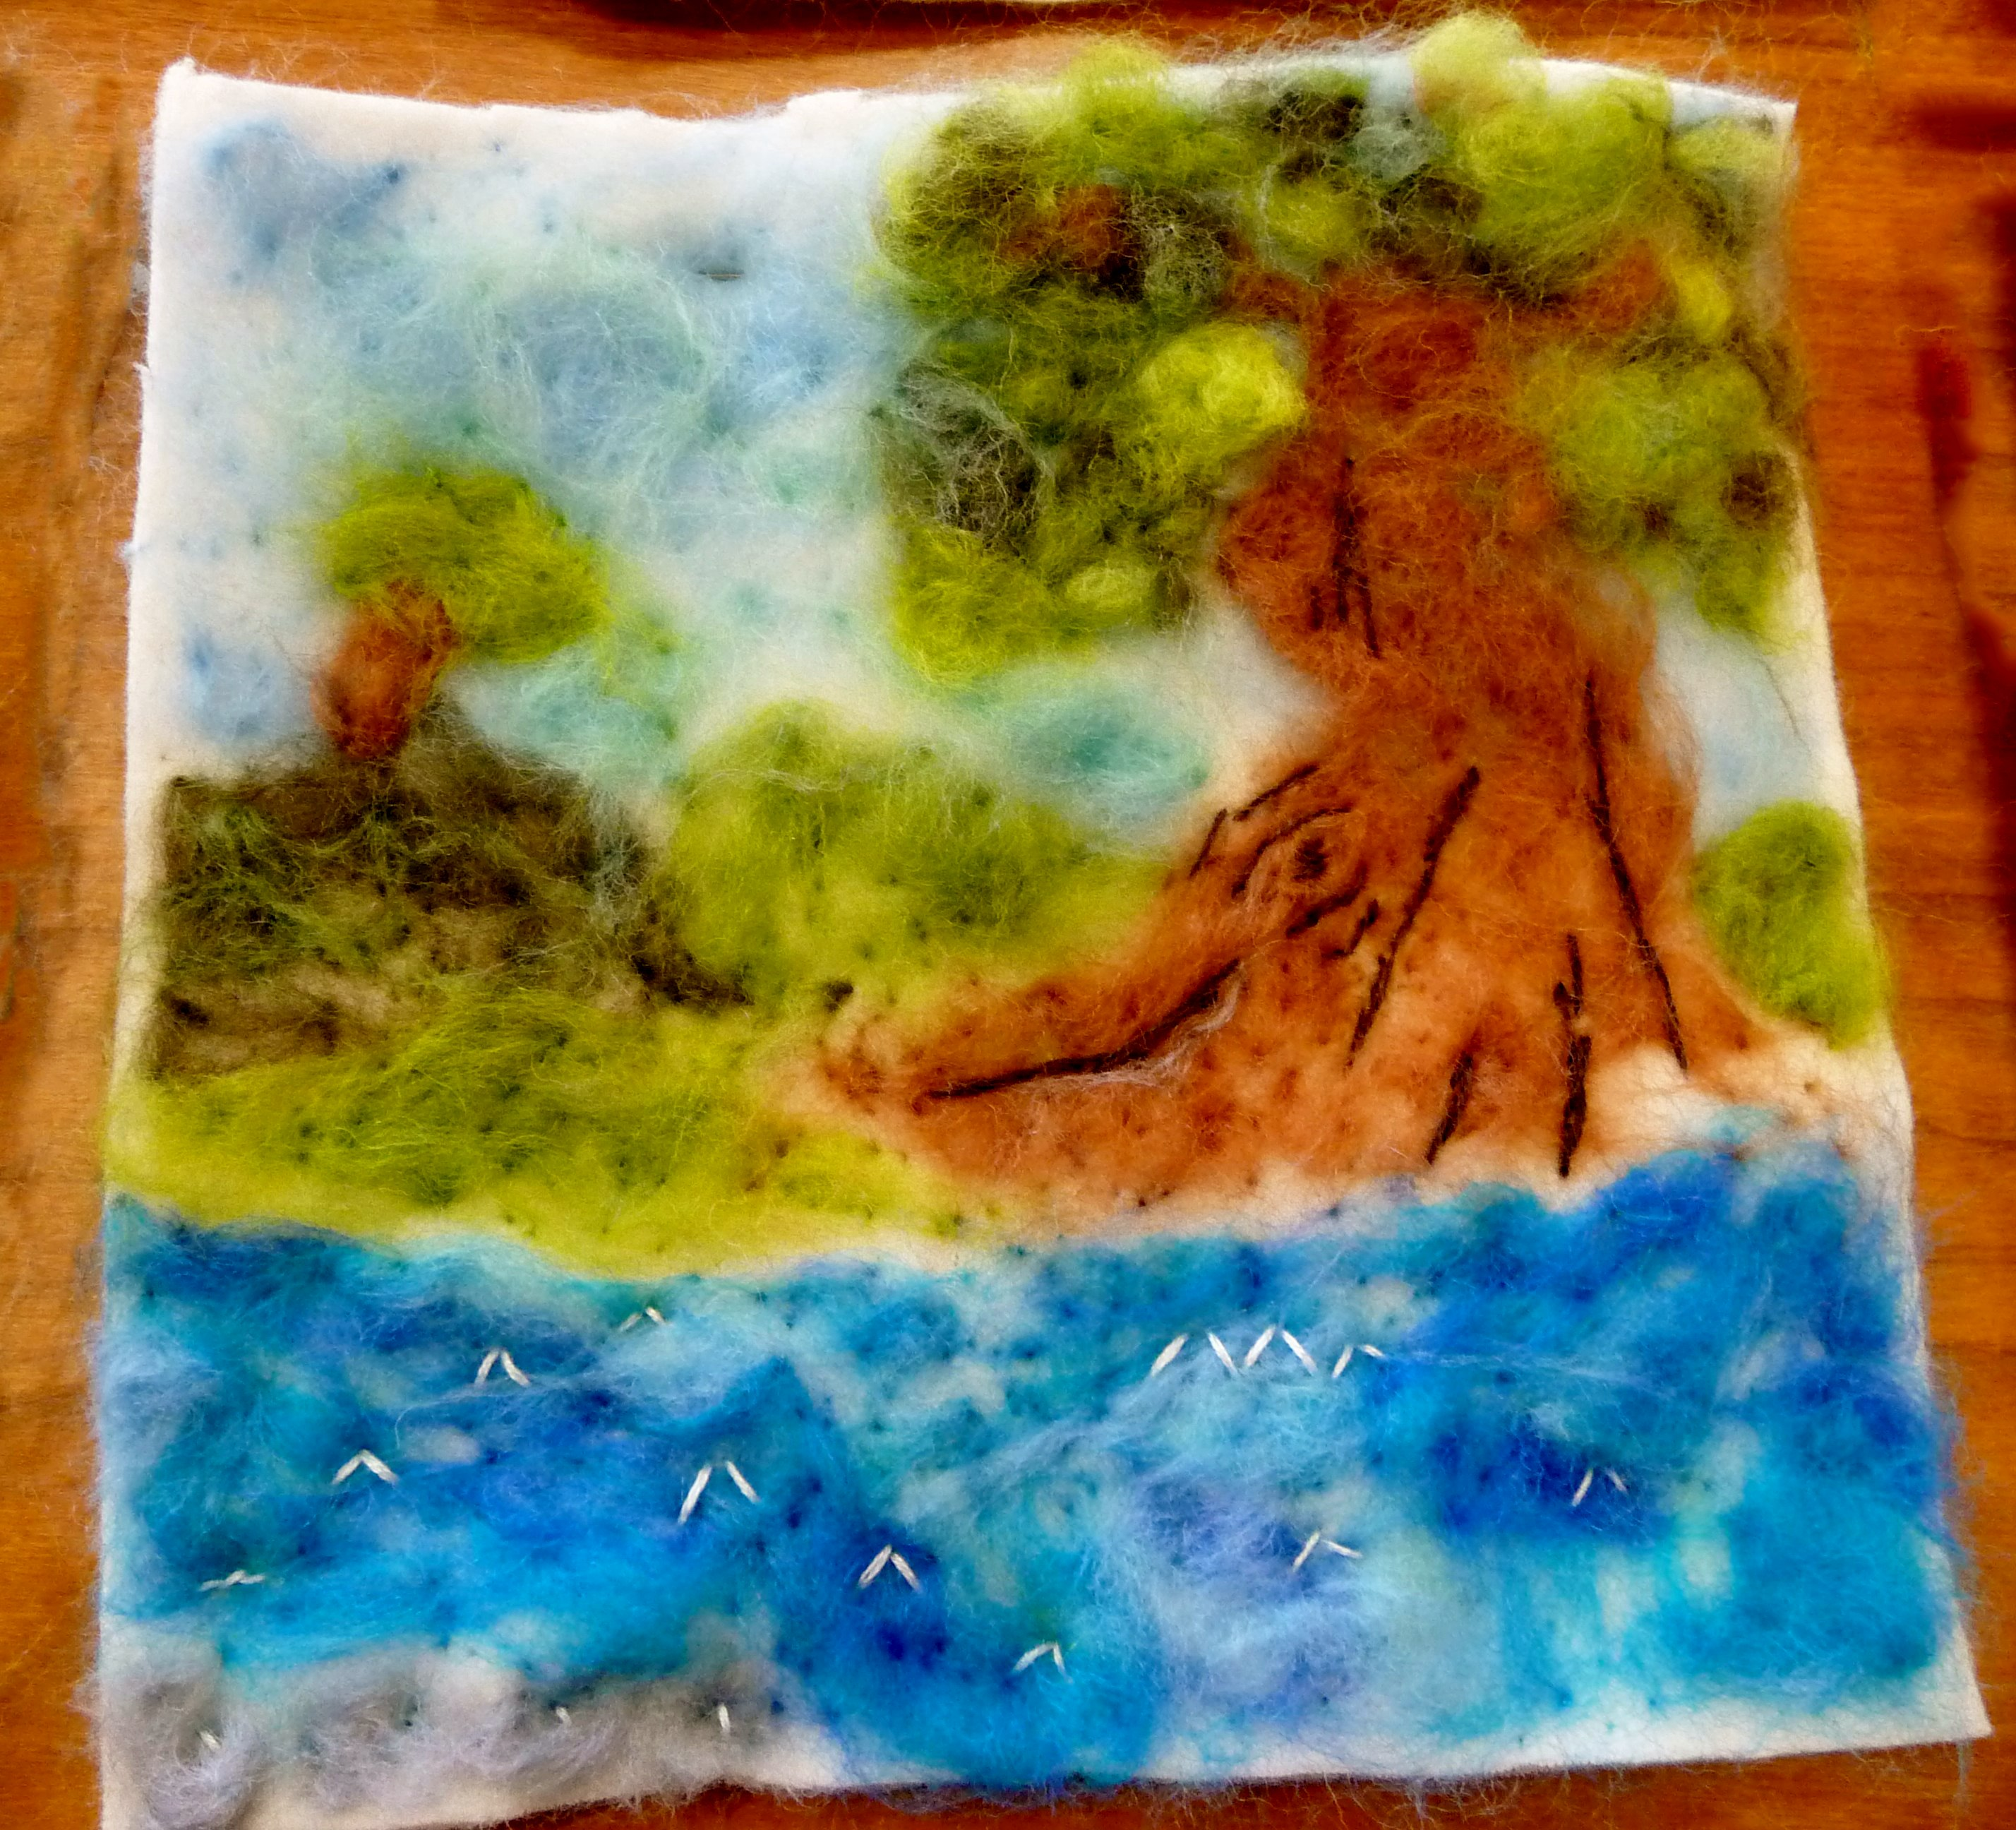 YE group May 2015. This is Ailis's completed needlefelted landscape